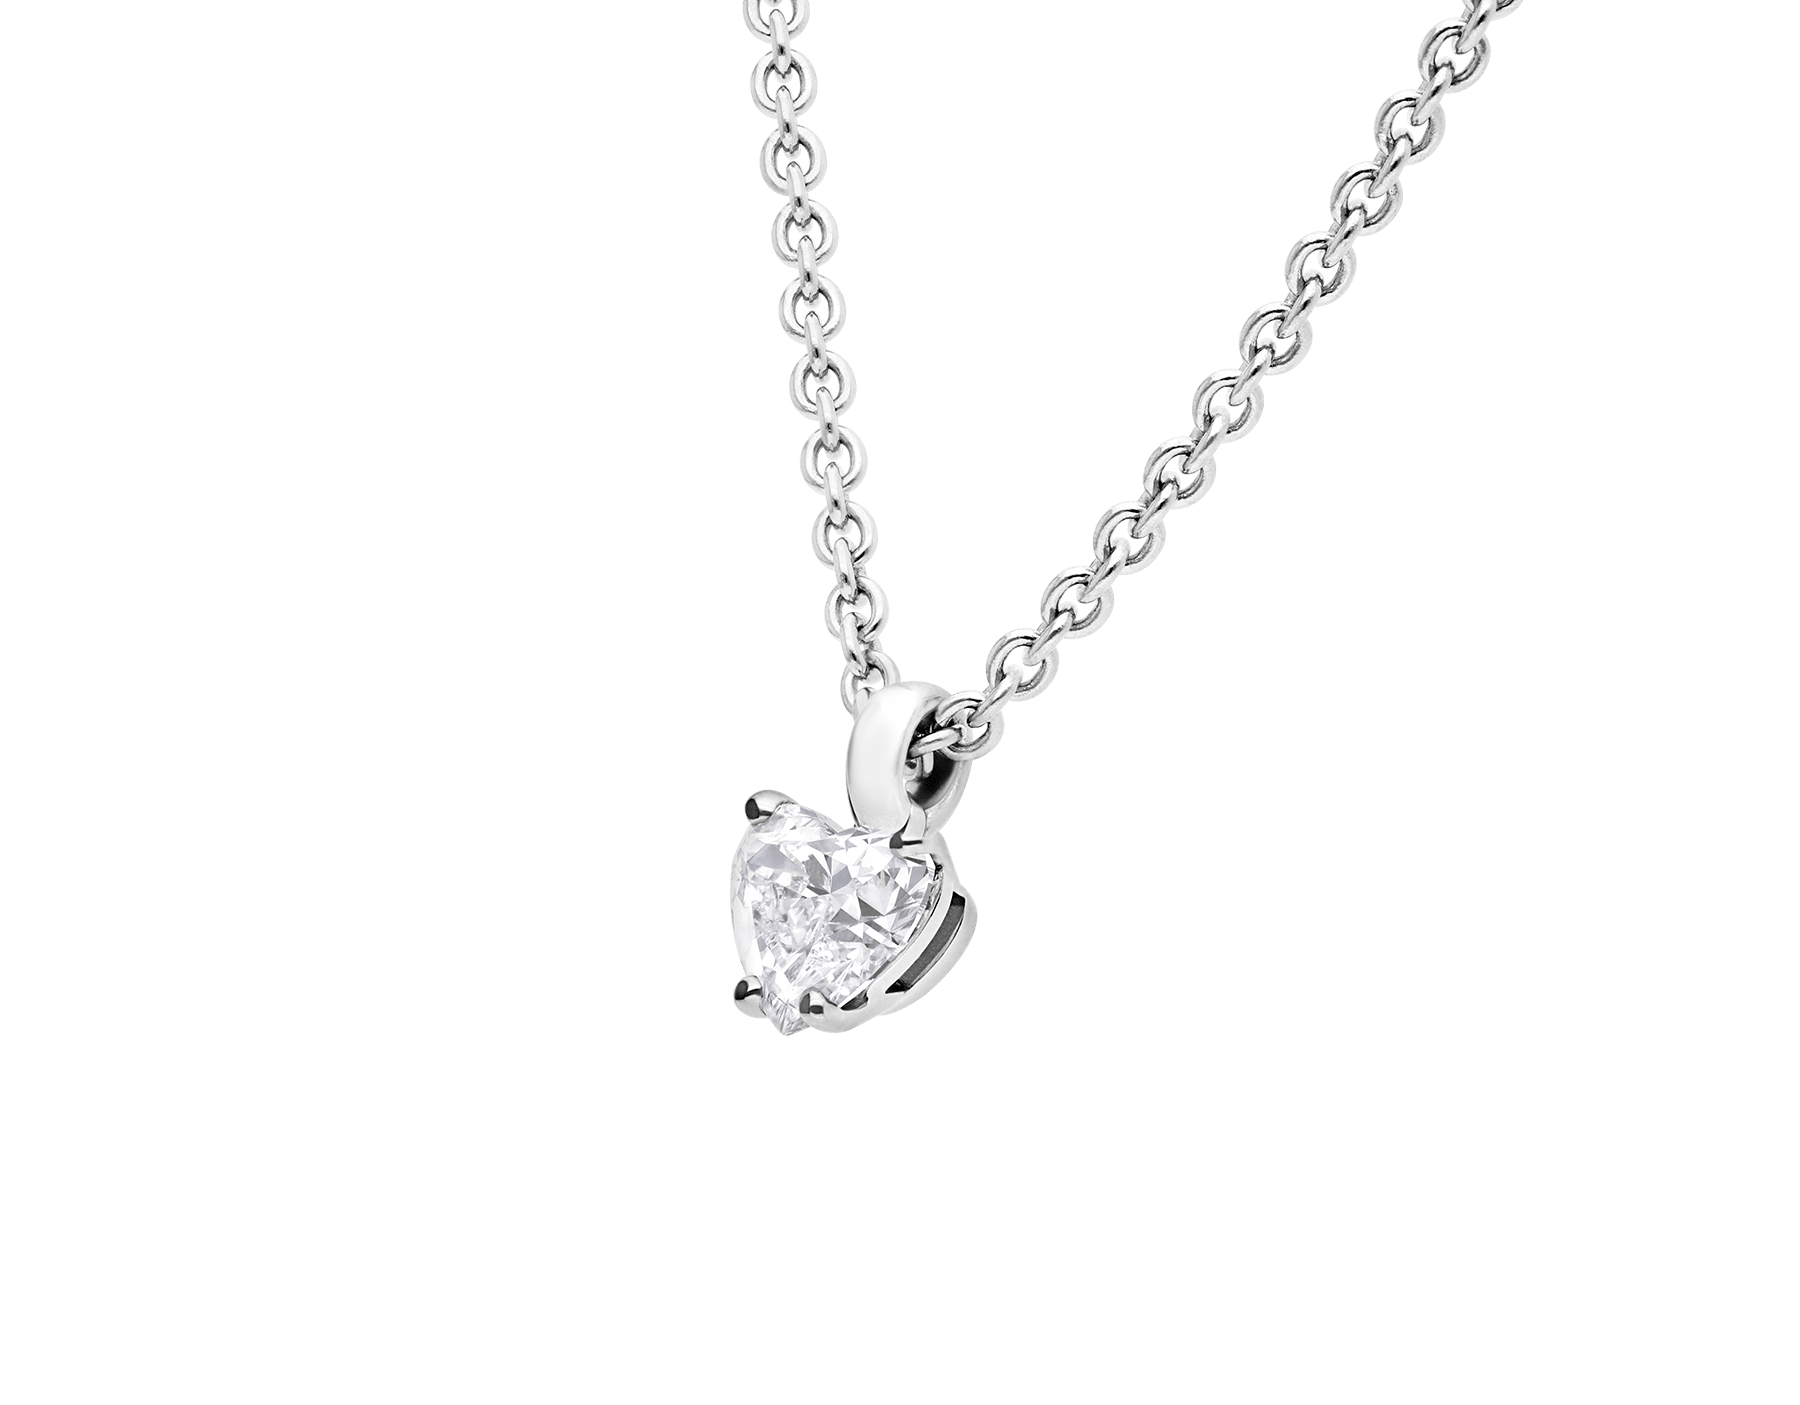 Griffe 18 kt white gold pendant with heart cut diamond and 18 kt white gold chain 338204 image 3